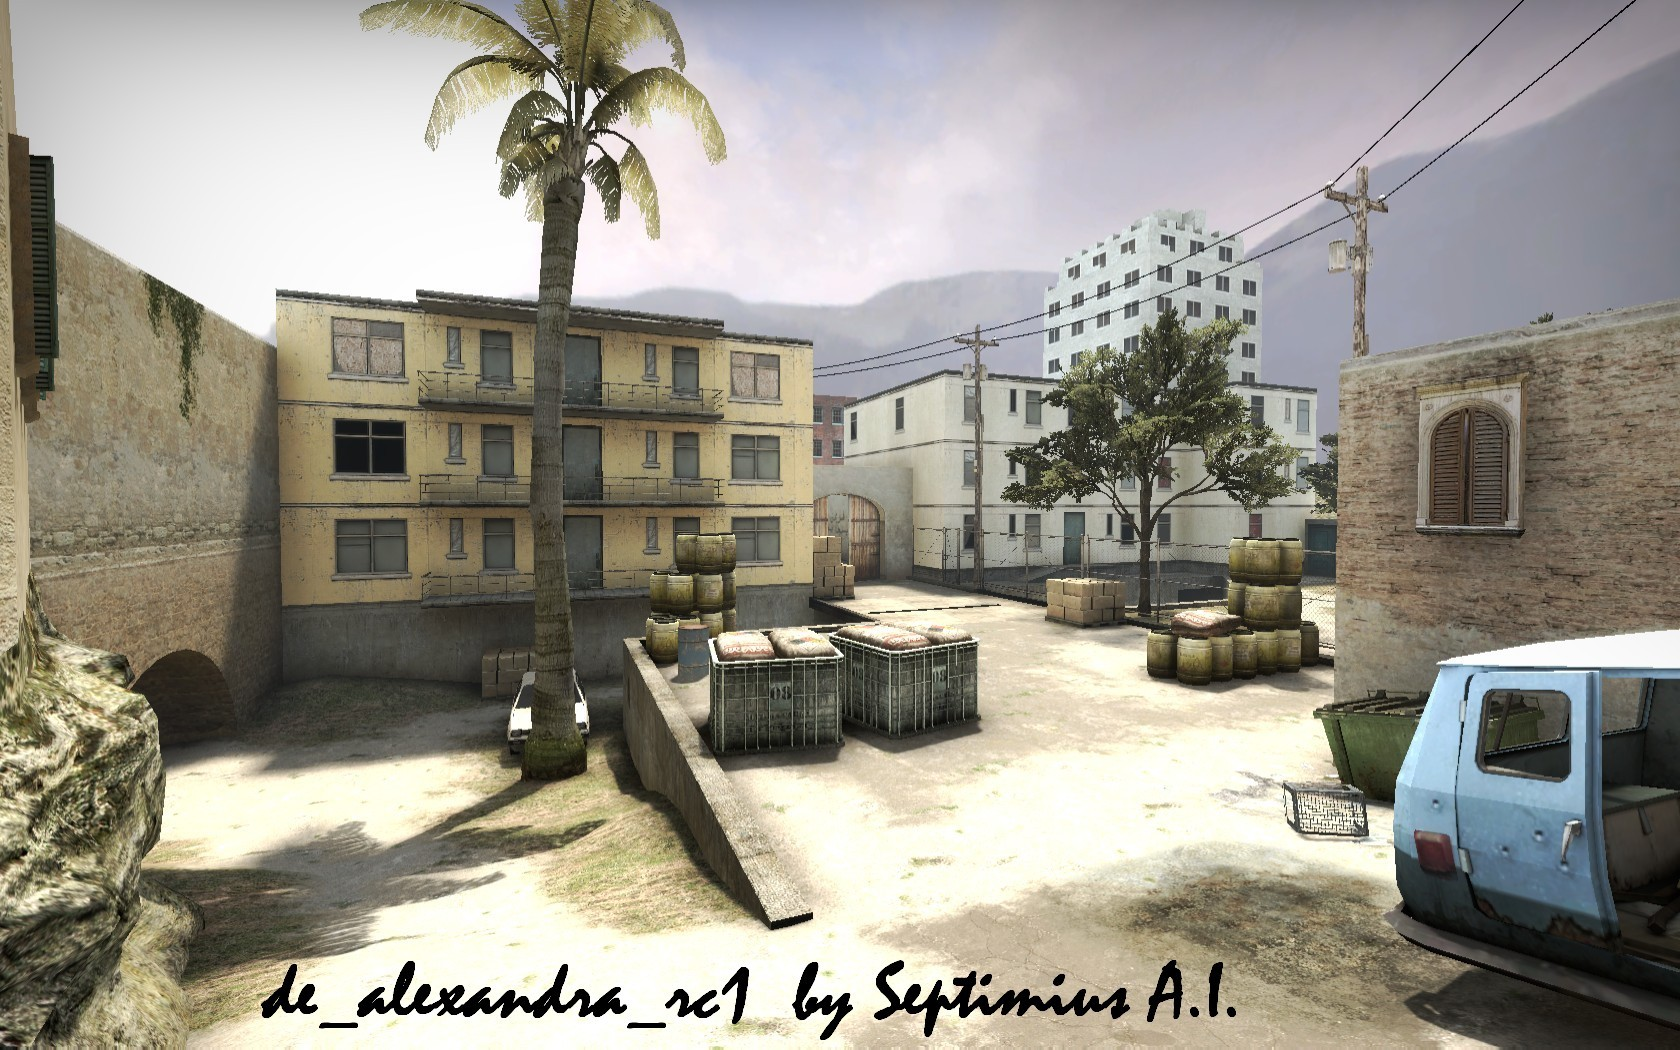 counter-strike.biz-maps-de alexandra rc1-scr-01